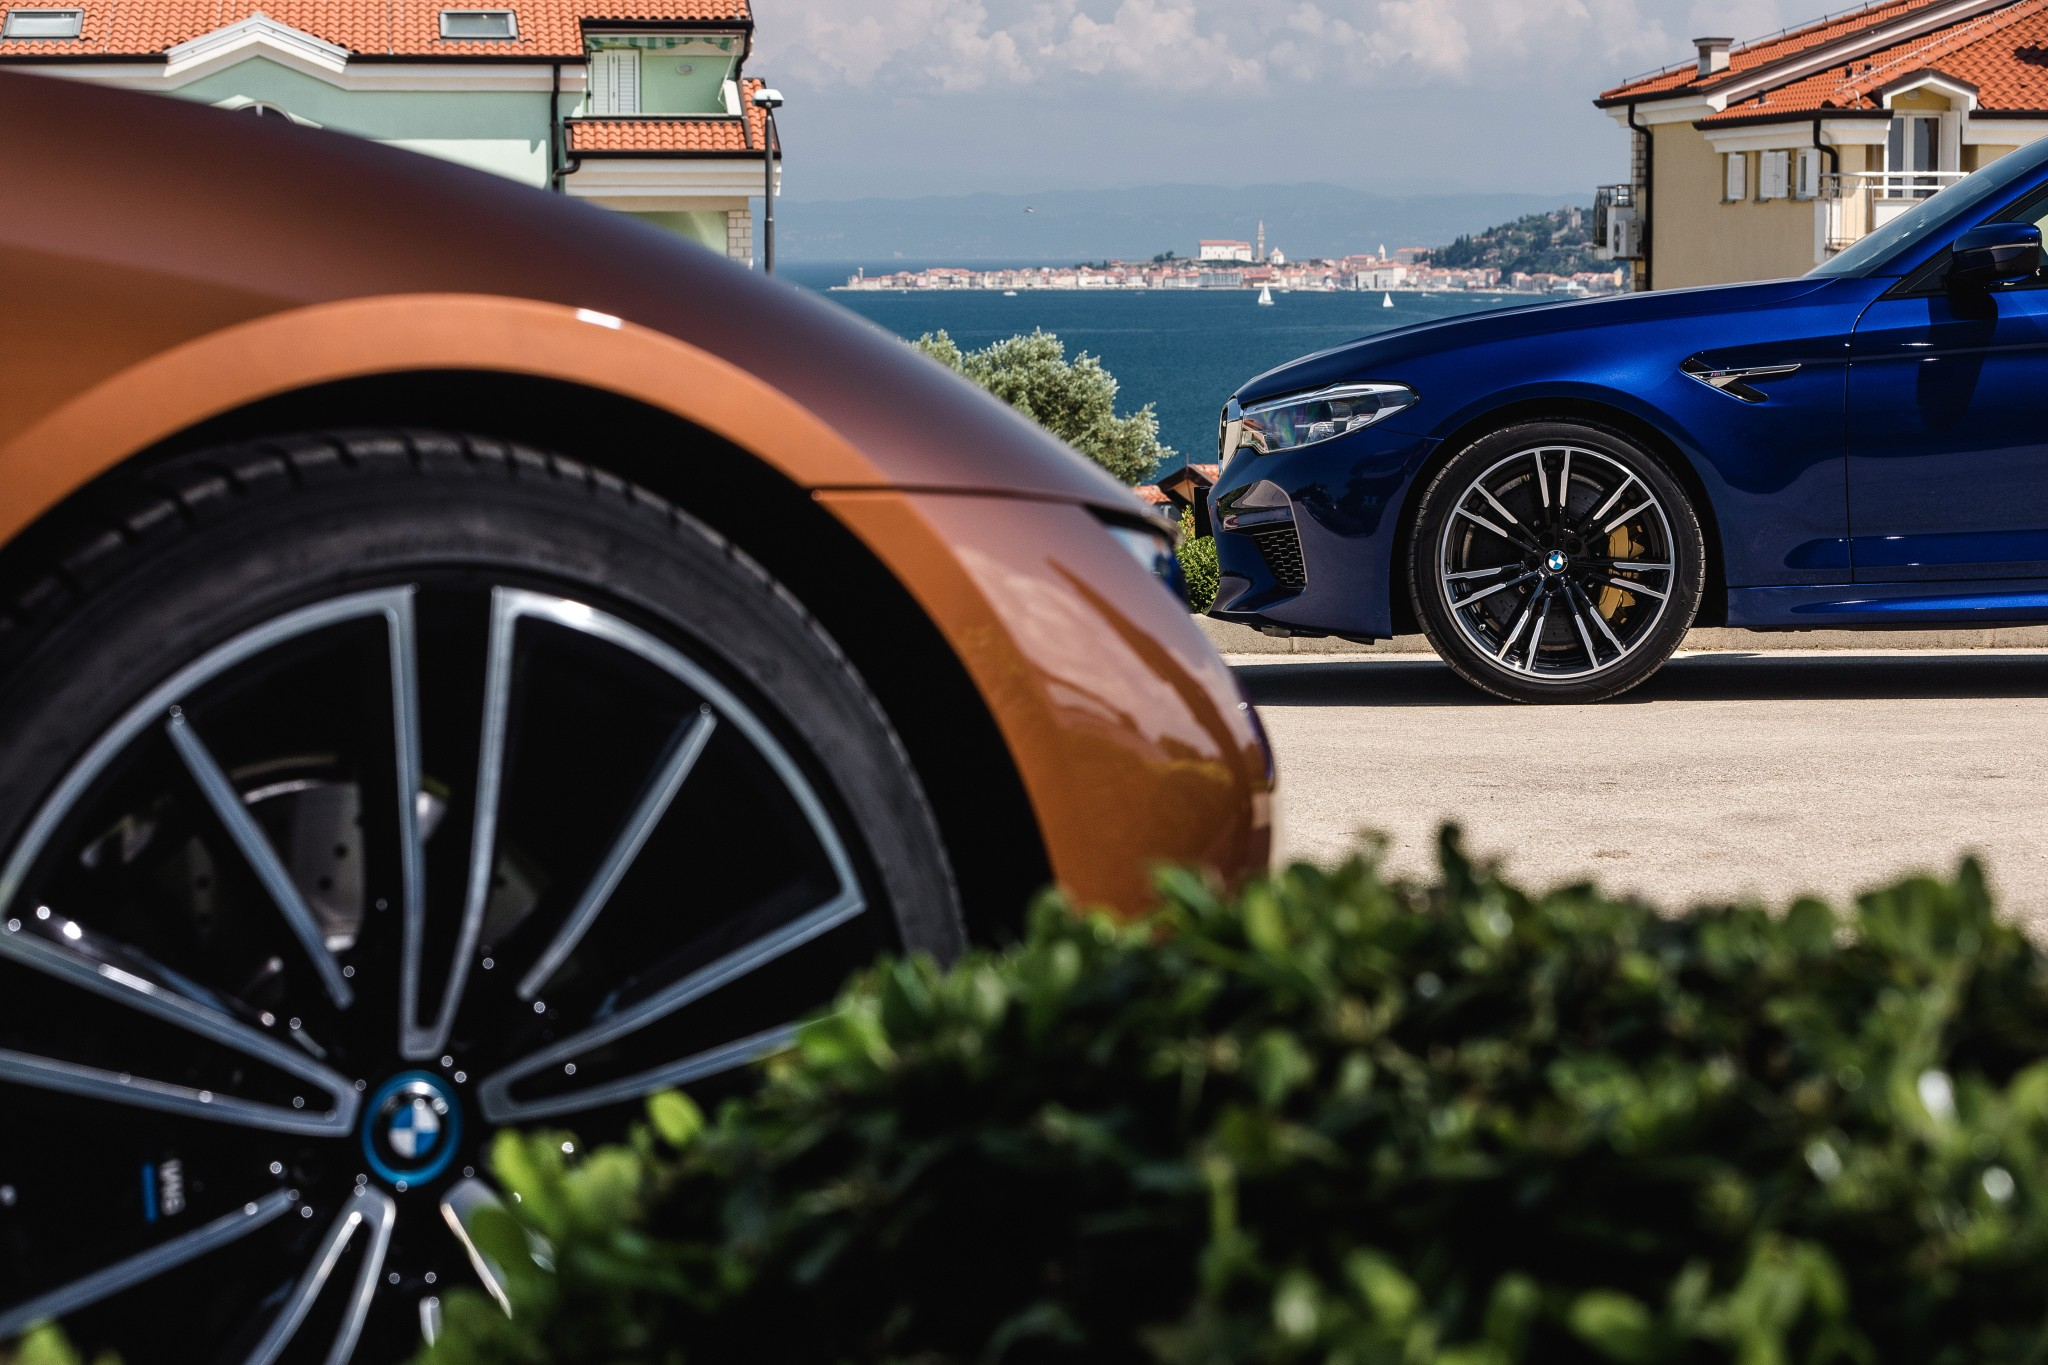 BMWM5i8RoadsterSIPR-PhotoZigaIntihar-129